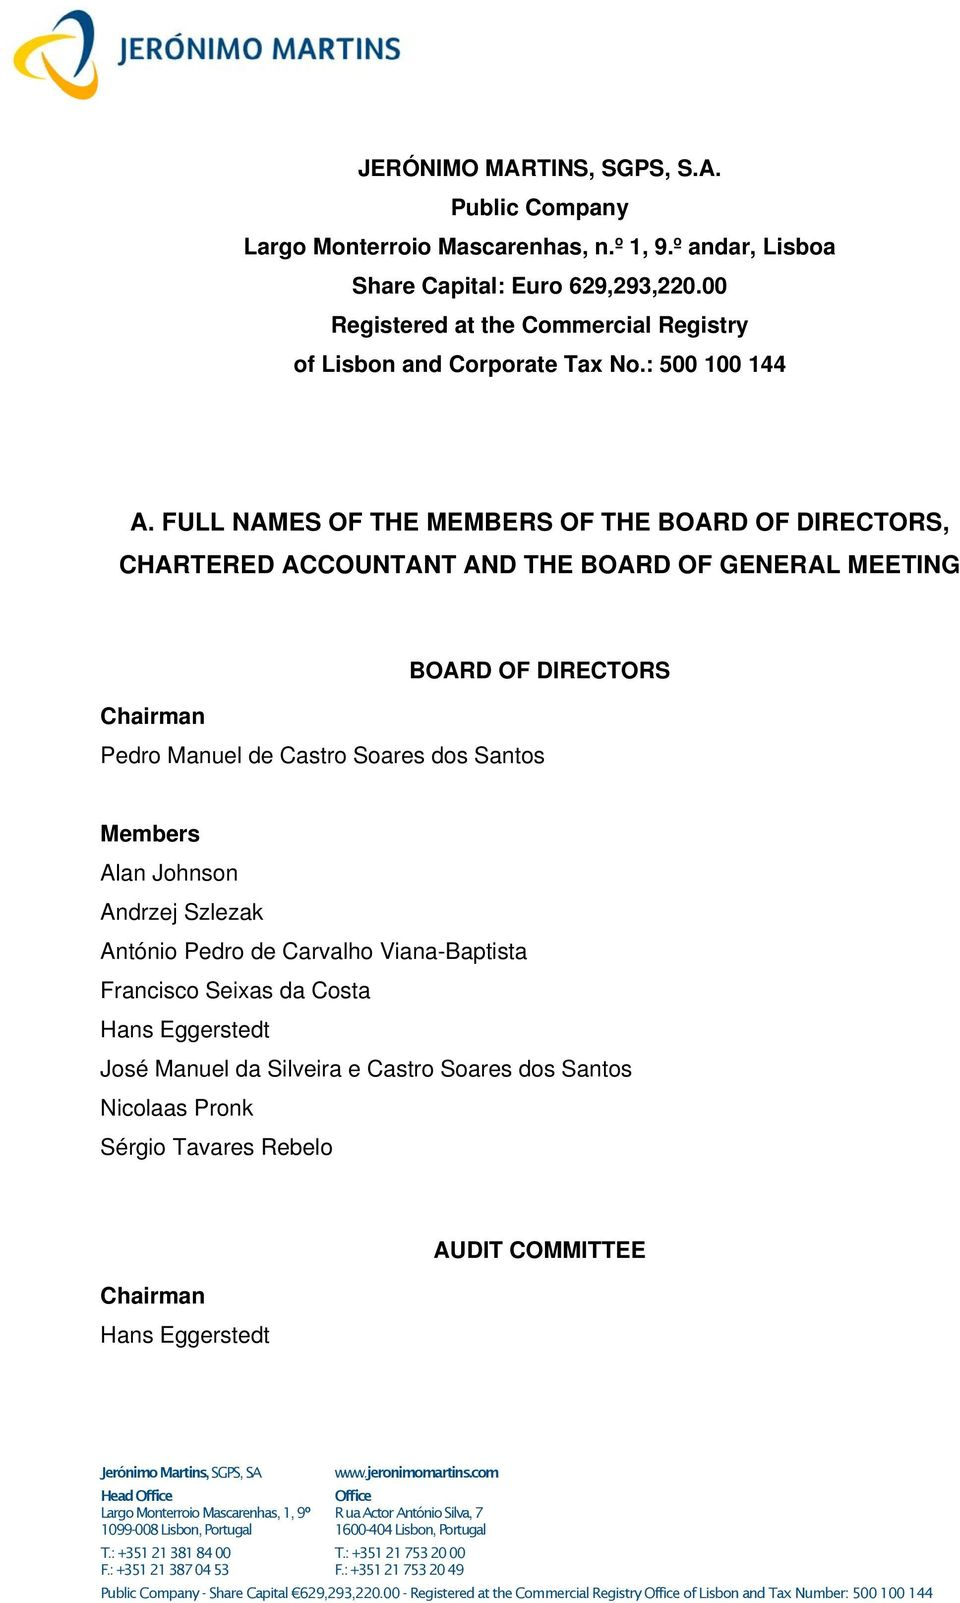 FULL NAMES OF THE MEMBERS OF THE BOARD OF DIRECTORS, CHARTERED ACCOUNTANT AND THE BOARD OF GENERAL MEETING BOARD OF DIRECTORS Chairman Pedro Manuel de Castro Soares dos Santos Members